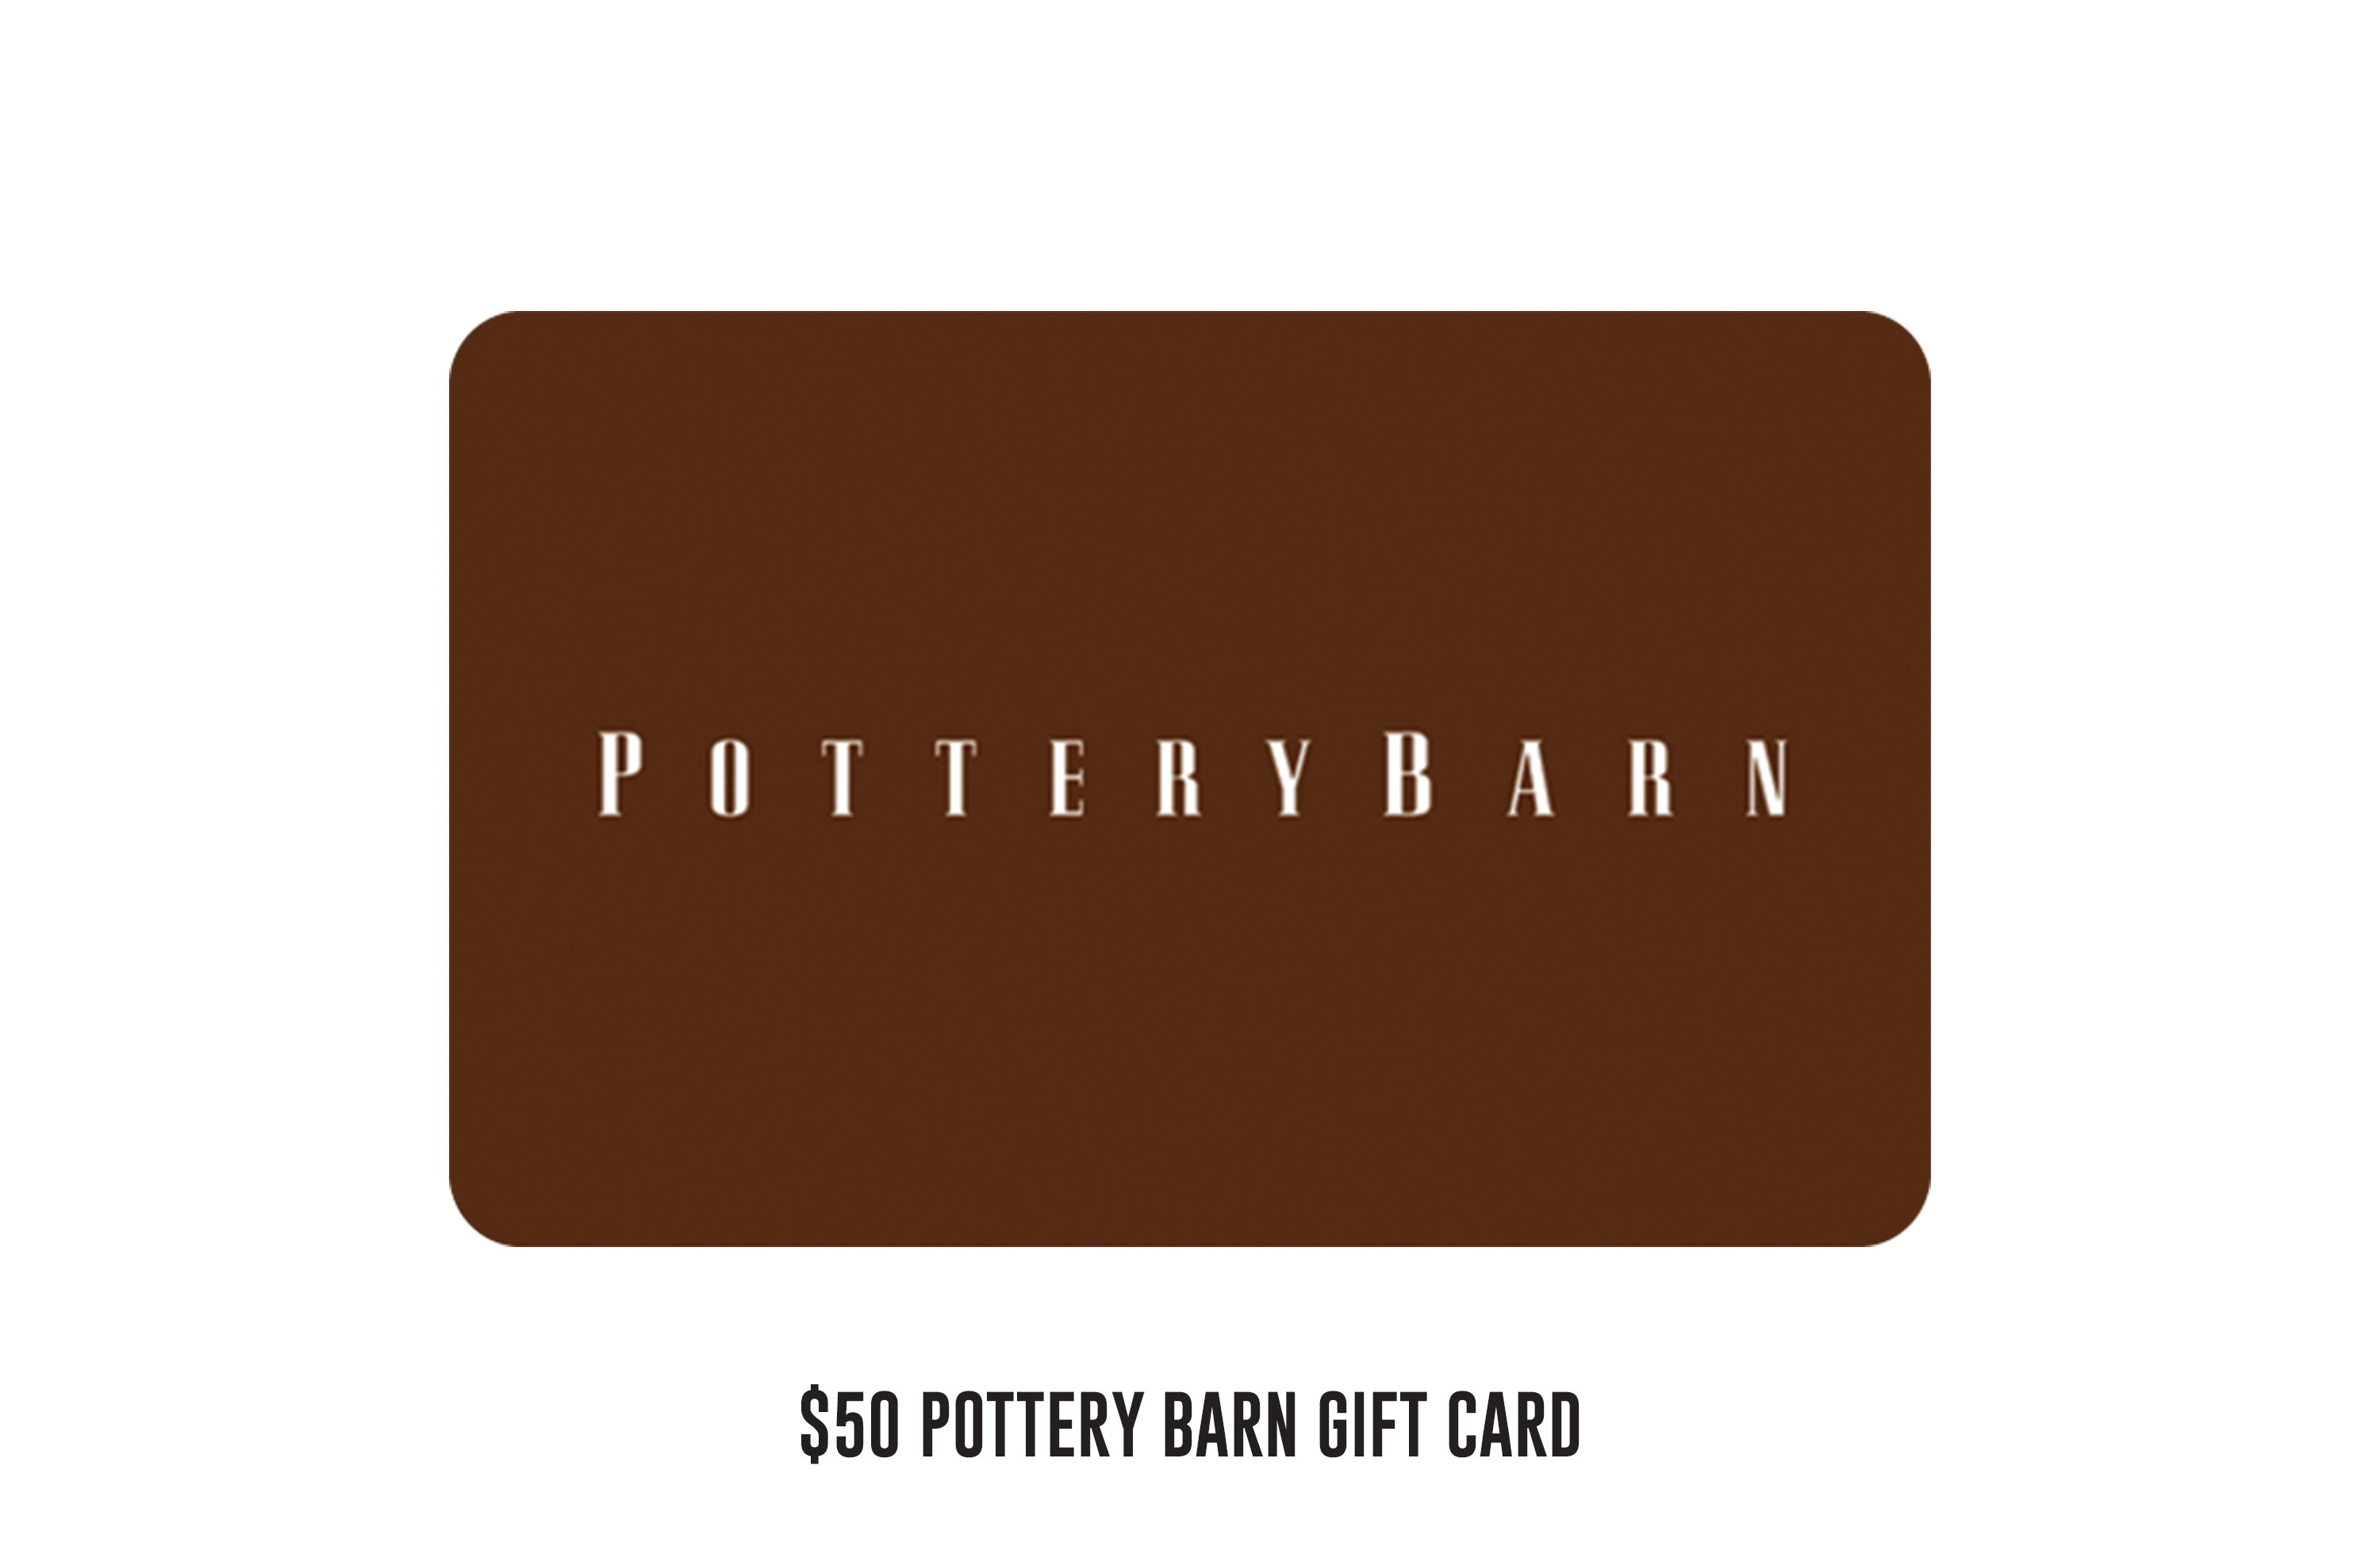 $50 Pottery Barn gift card